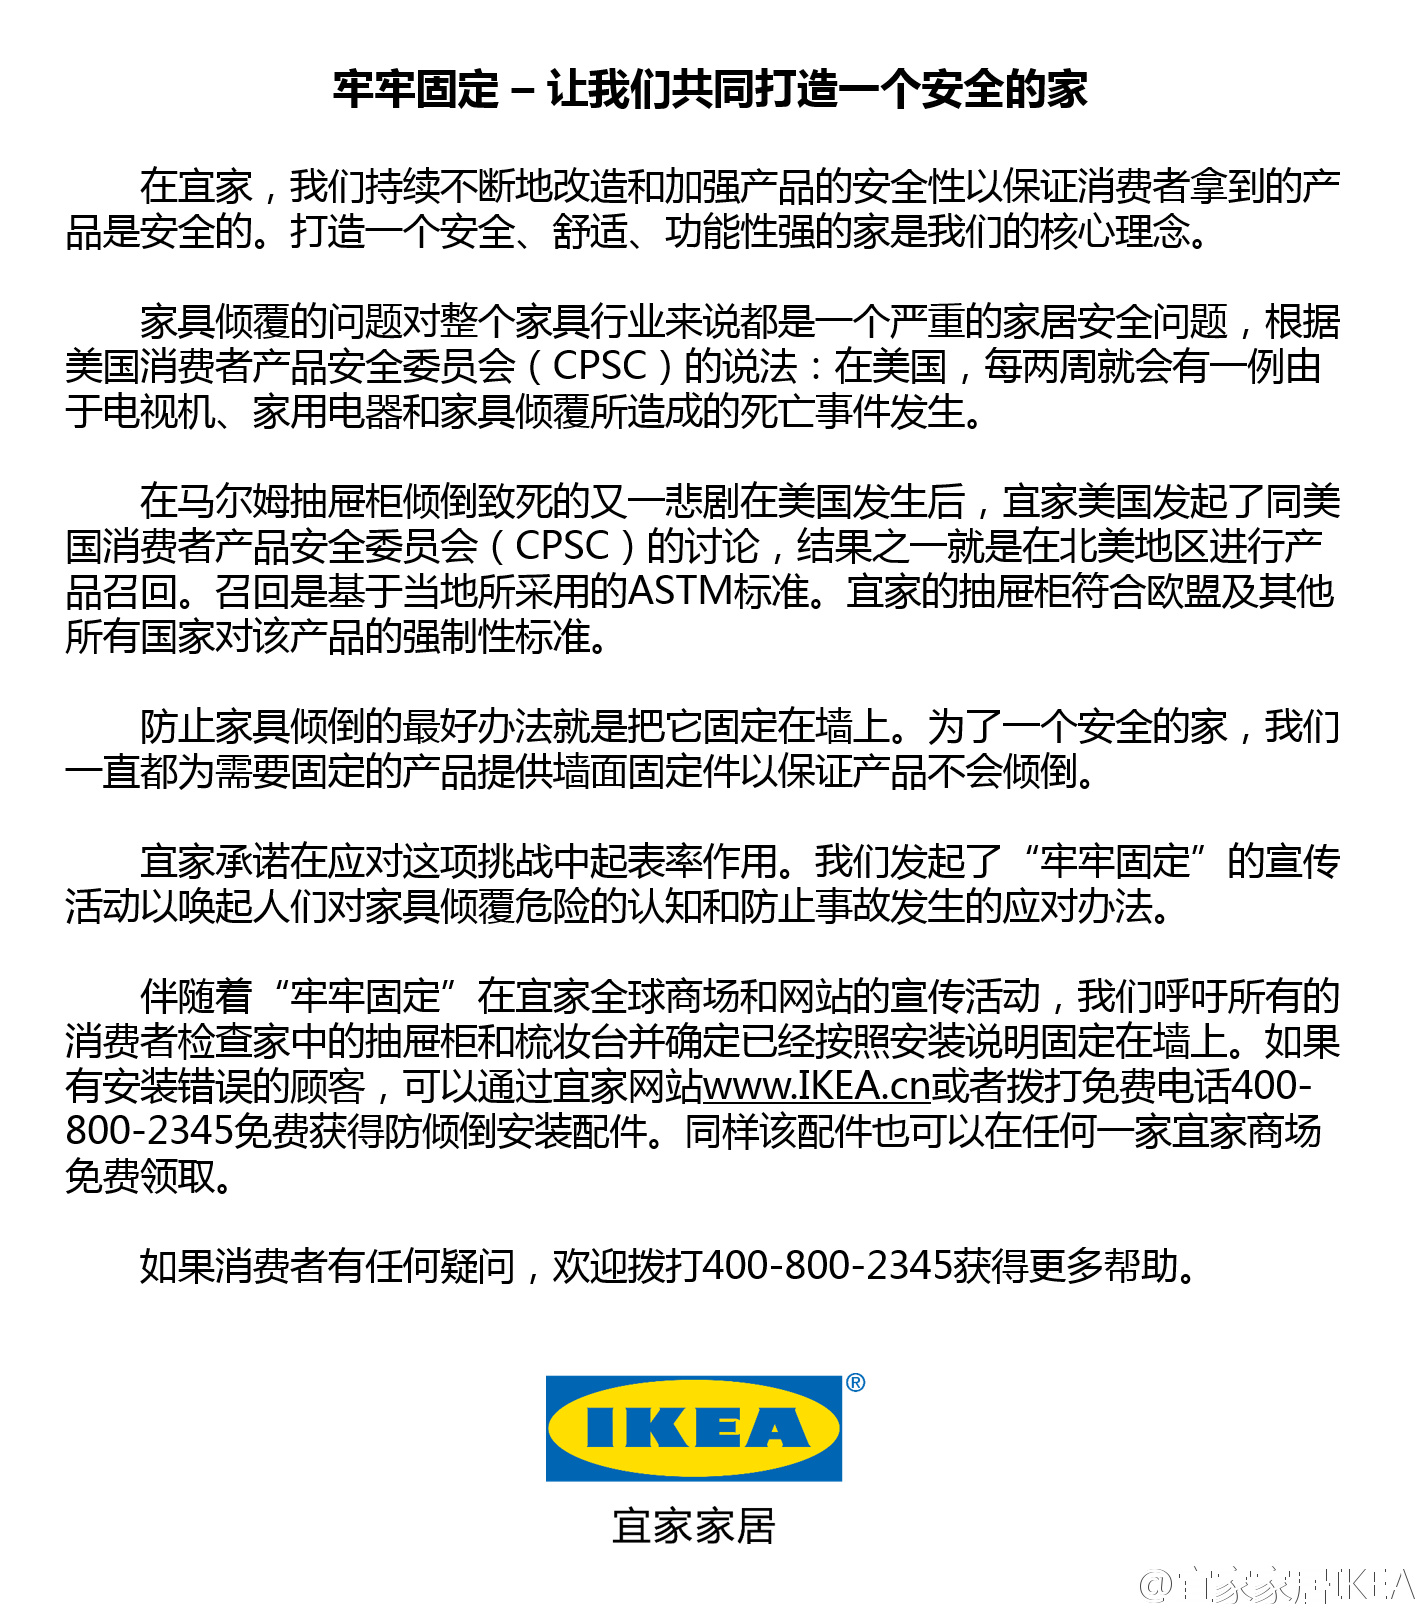 Ikea Mandal Kommode Gebraucht ~ In a statement issued to bloggers Sixth Tone , Ikea China spokeswoman